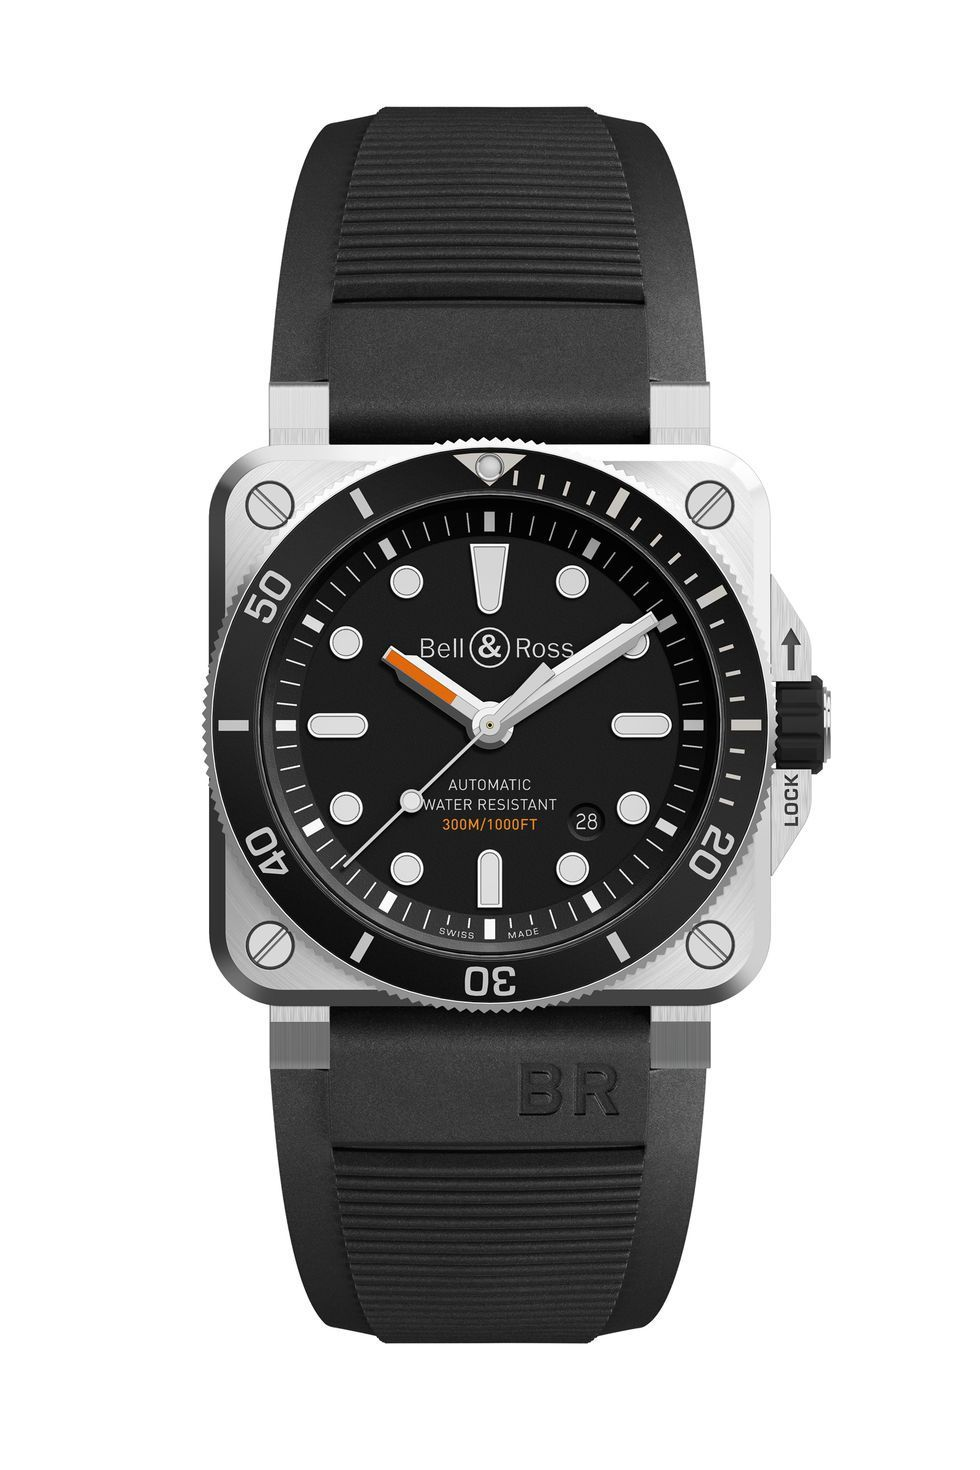 The Best Dive Watches of 2018 - Coolest Mens Dive Watches a6b3e50a2461